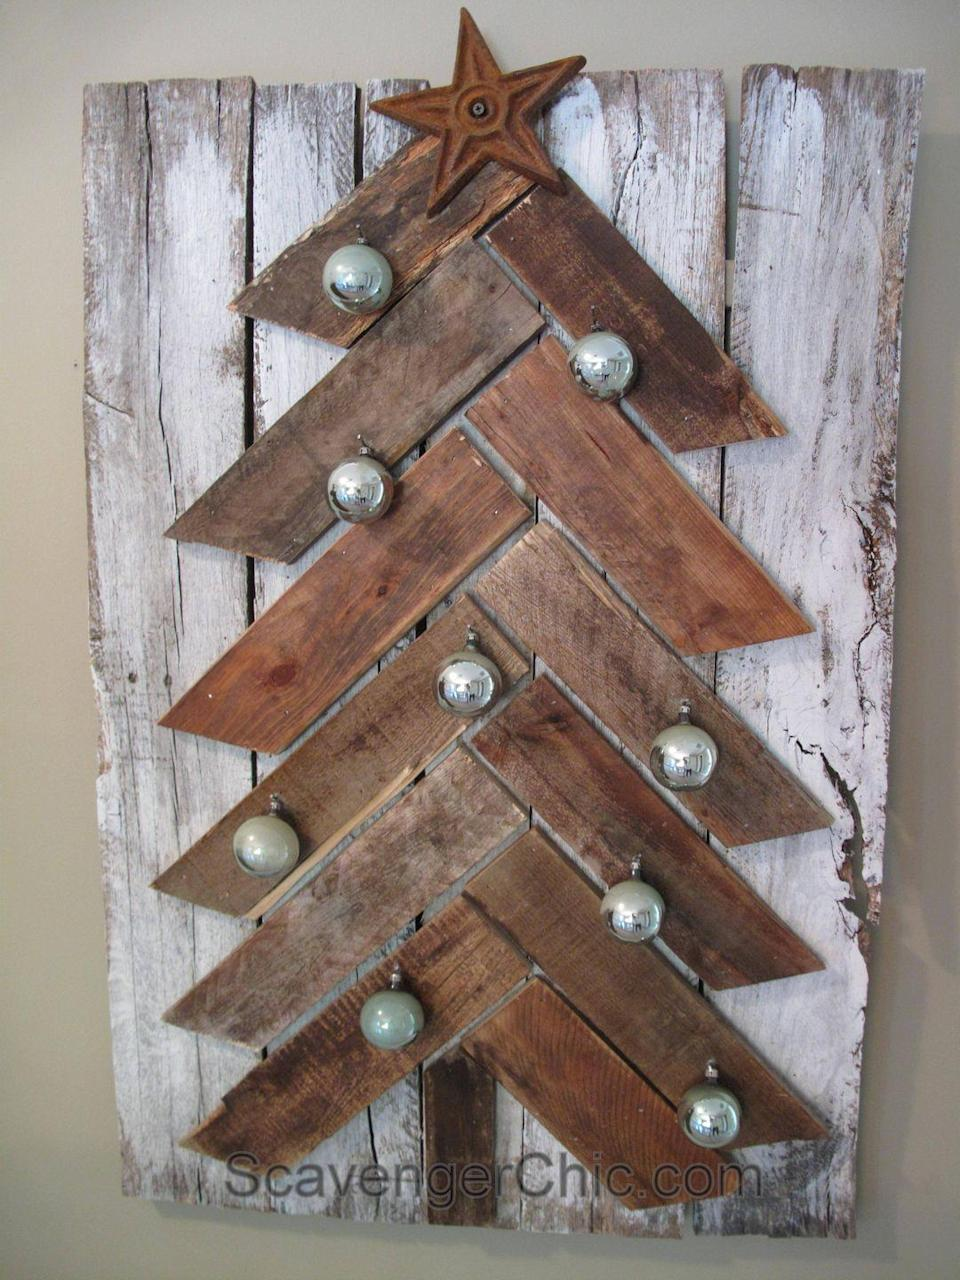 """<p>While this stylish pallet tree could be decorated with almost anything, we love the vintage grayish-green Christmas ornaments. The white-washed backing board provides a nice contrast to the plain wood of the tree, too.</p><p><strong>Get the tutorial at <a href=""""https://scavengerchic.com/2014/11/23/pallet-wood-christmas-tree-diy/"""" rel=""""nofollow noopener"""" target=""""_blank"""" data-ylk=""""slk:Scavenger Chic"""" class=""""link rapid-noclick-resp"""">Scavenger Chic</a>.</strong></p><p><a class=""""link rapid-noclick-resp"""" href=""""https://www.amazon.com/Best-Sellers-Industrial-Scientific-Finishing-Nails/zgbs/industrial/17724327011?tag=syn-yahoo-20&ascsubtag=%5Bartid%7C10050.g.23322271%5Bsrc%7Cyahoo-us"""" rel=""""nofollow noopener"""" target=""""_blank"""" data-ylk=""""slk:SHOP FINISHING NAILS"""">SHOP FINISHING NAILS</a><br></p>"""